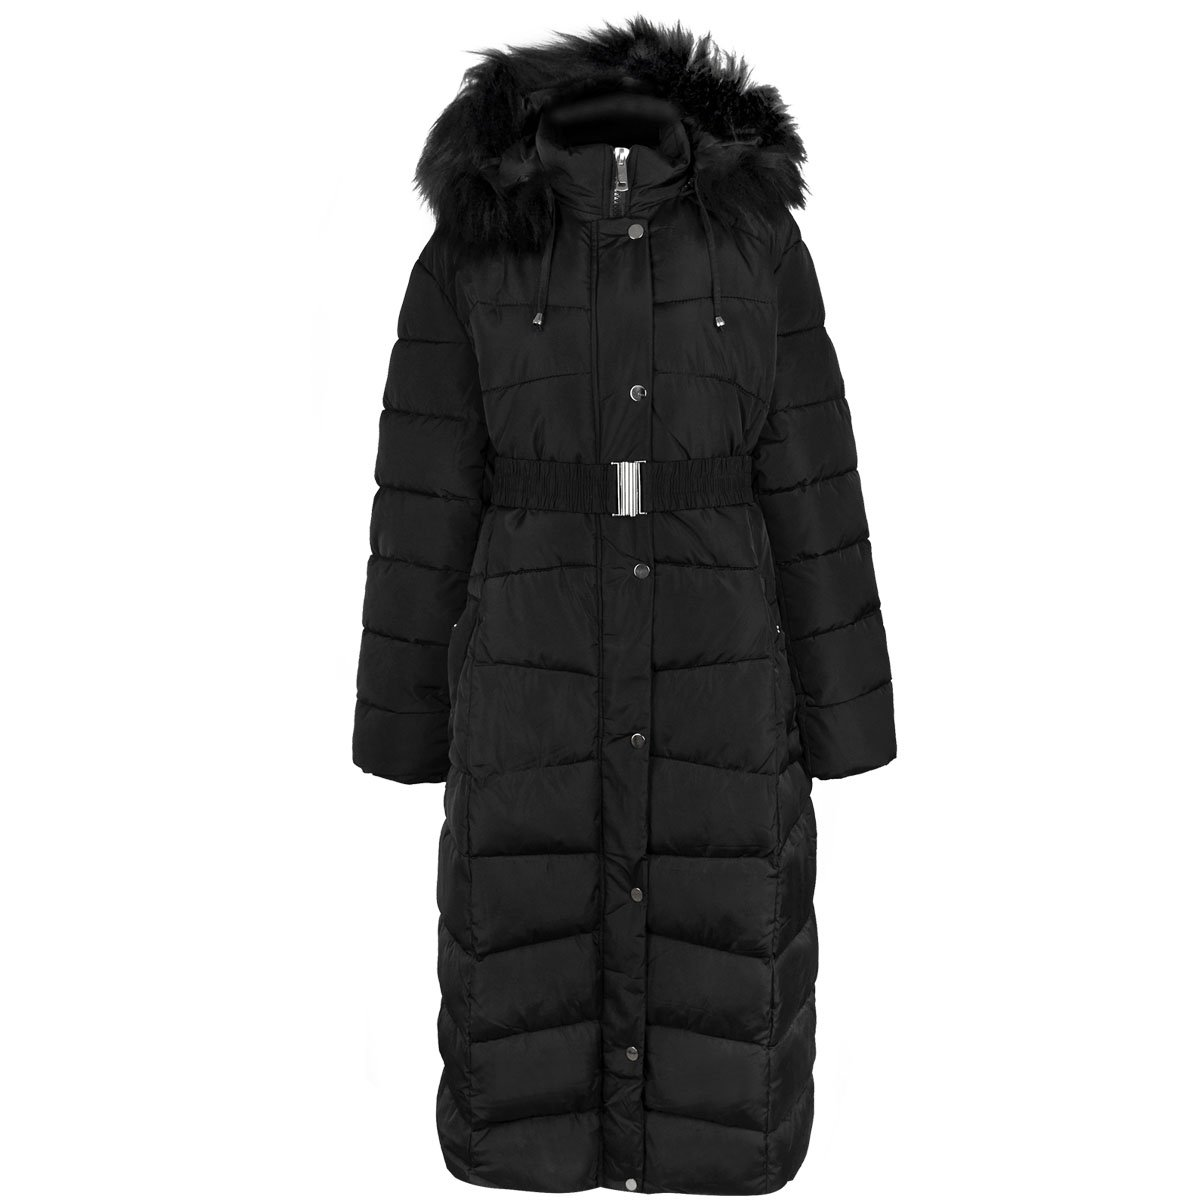 Fashion Thirsty New Womens Plus Size Long Quilted Padded Winter Coat Fur Trim Hood (US 20, Black)